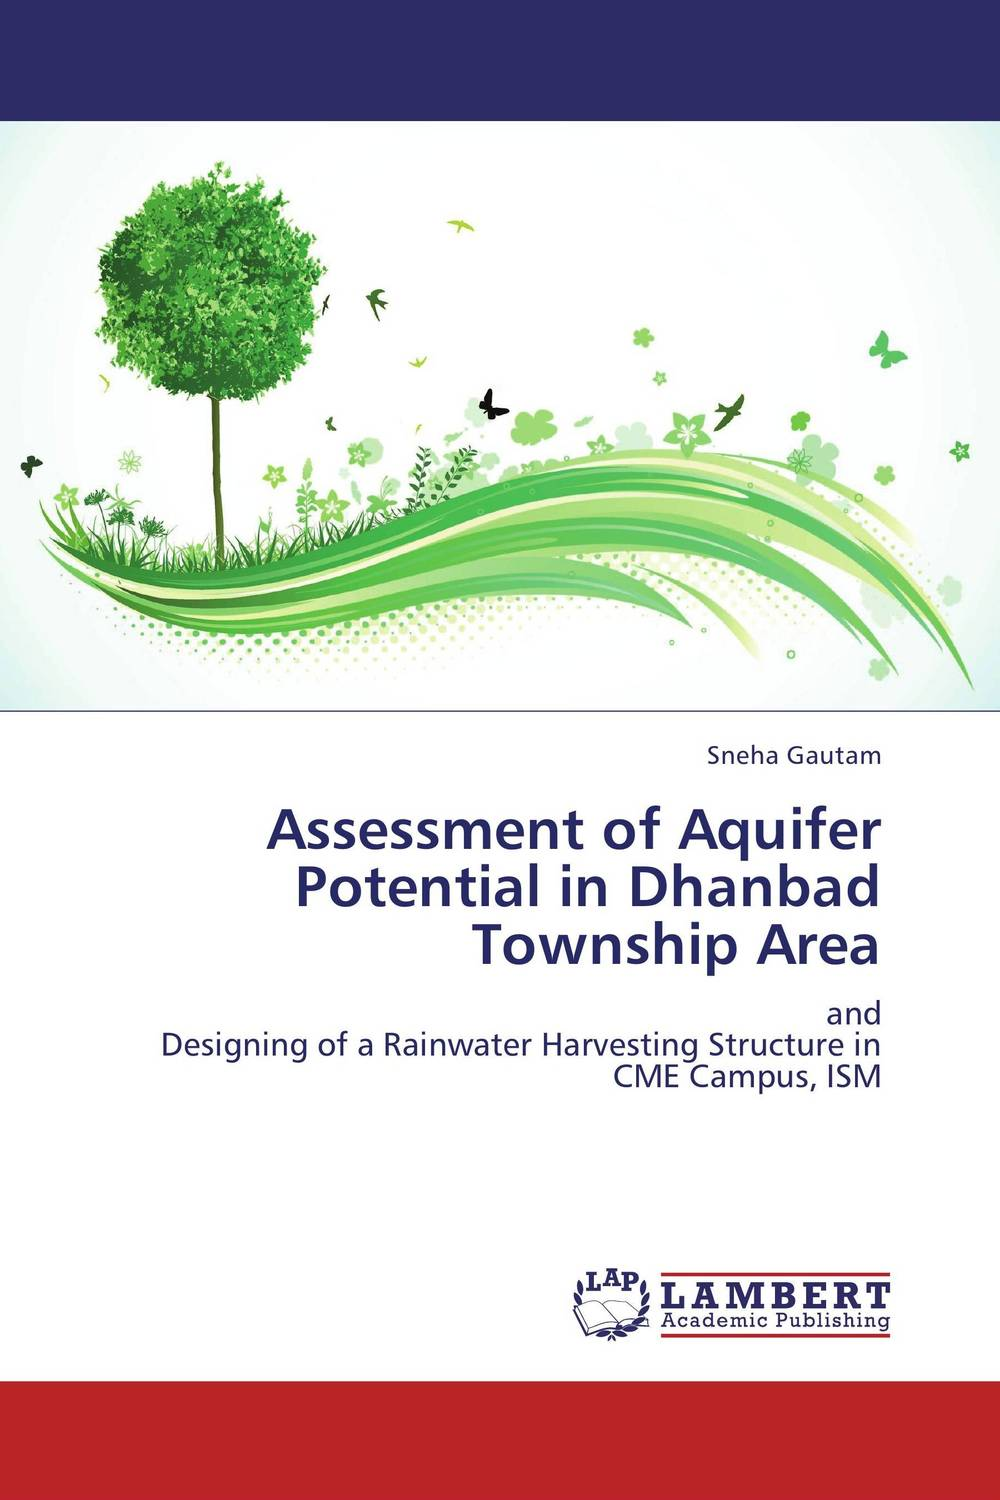 цена на Assessment of Aquifer Potential in Dhanbad Township Area